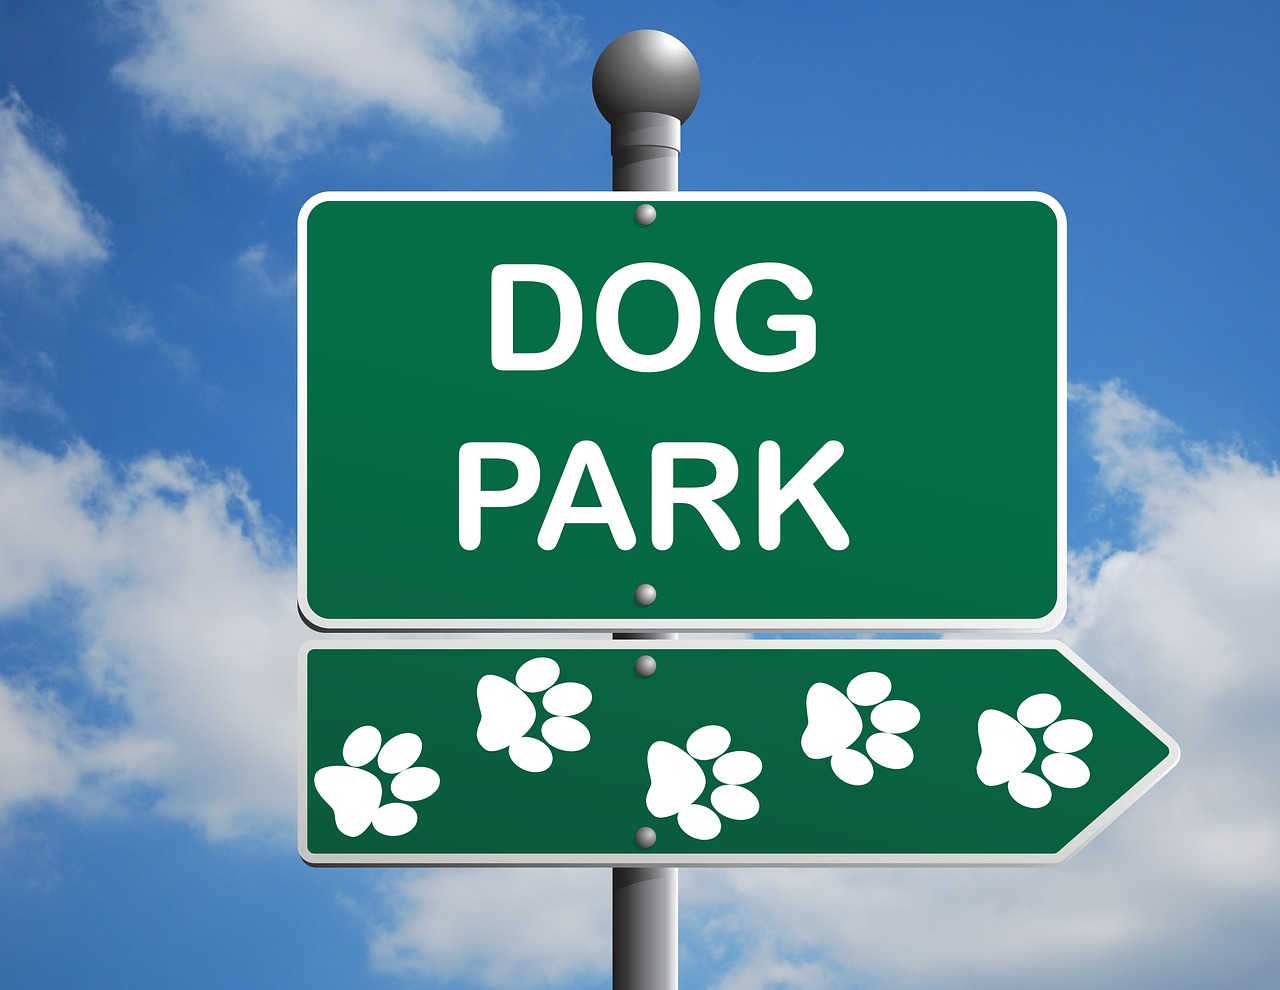 Trips to the dog park keep your dog--and yourself--better socialized.